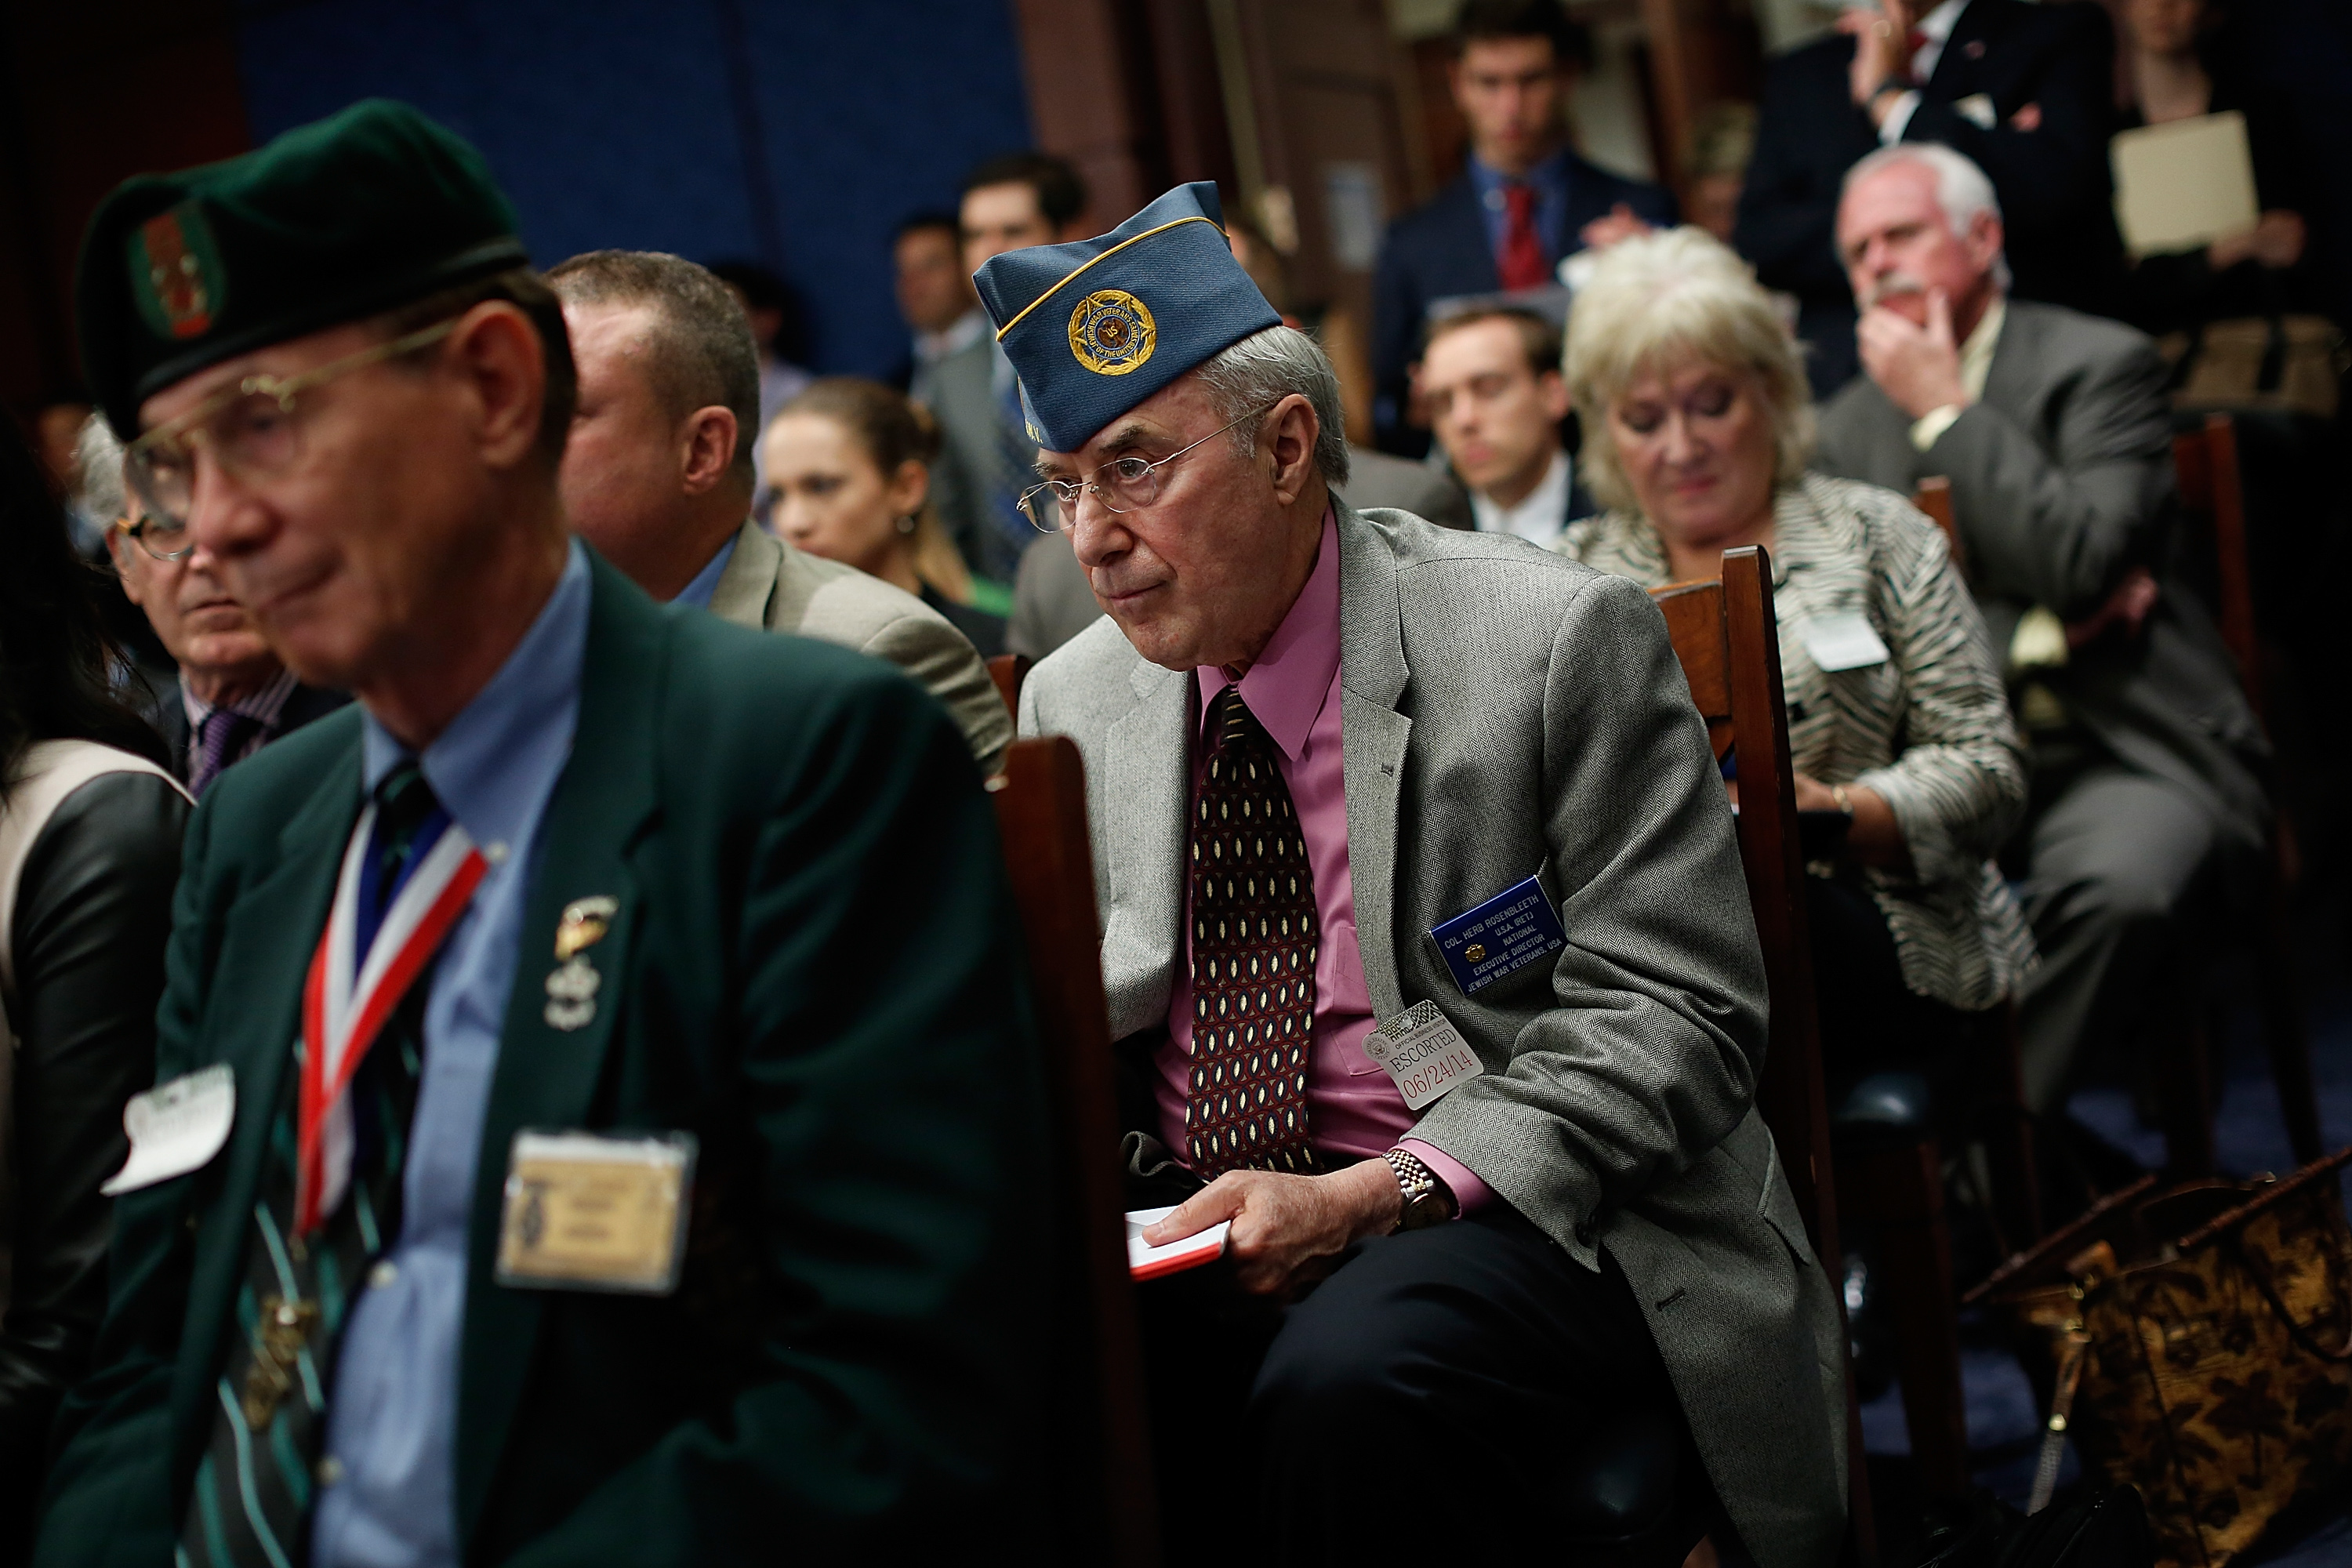 America's Veterans Deserve Honor, Homes, Health Care